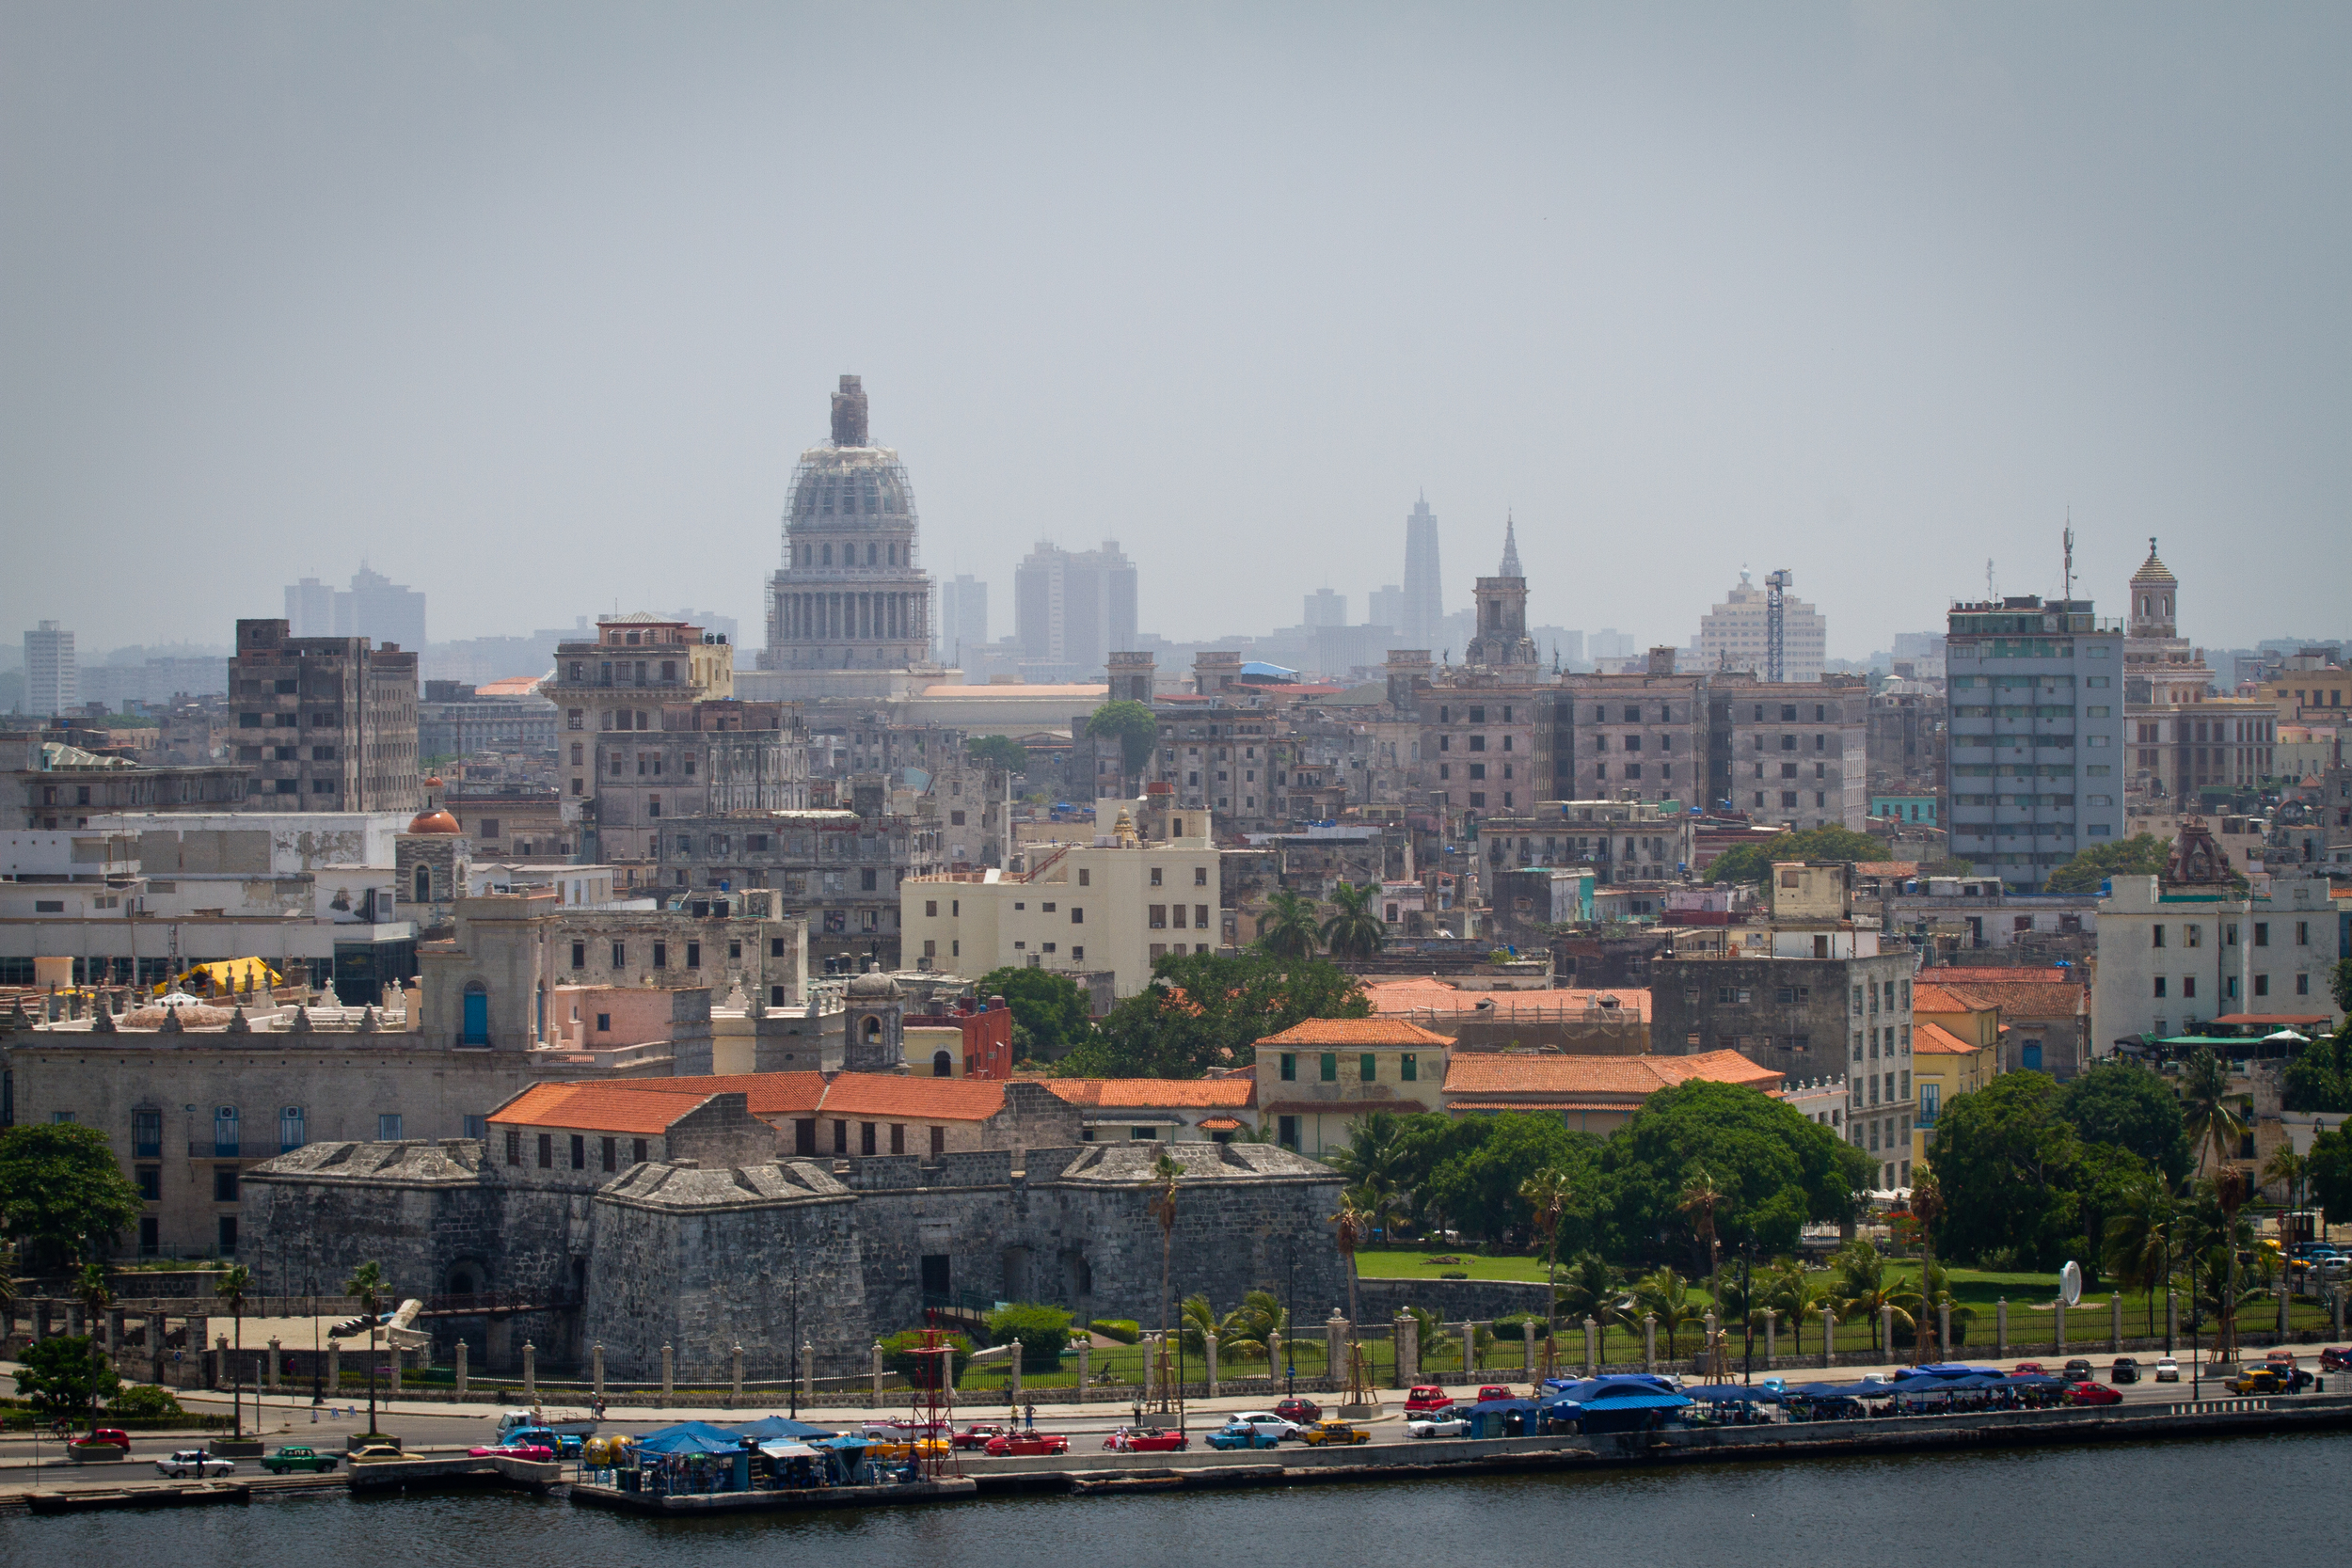 View of Old Havana from across the harbor, Havana, Cuba